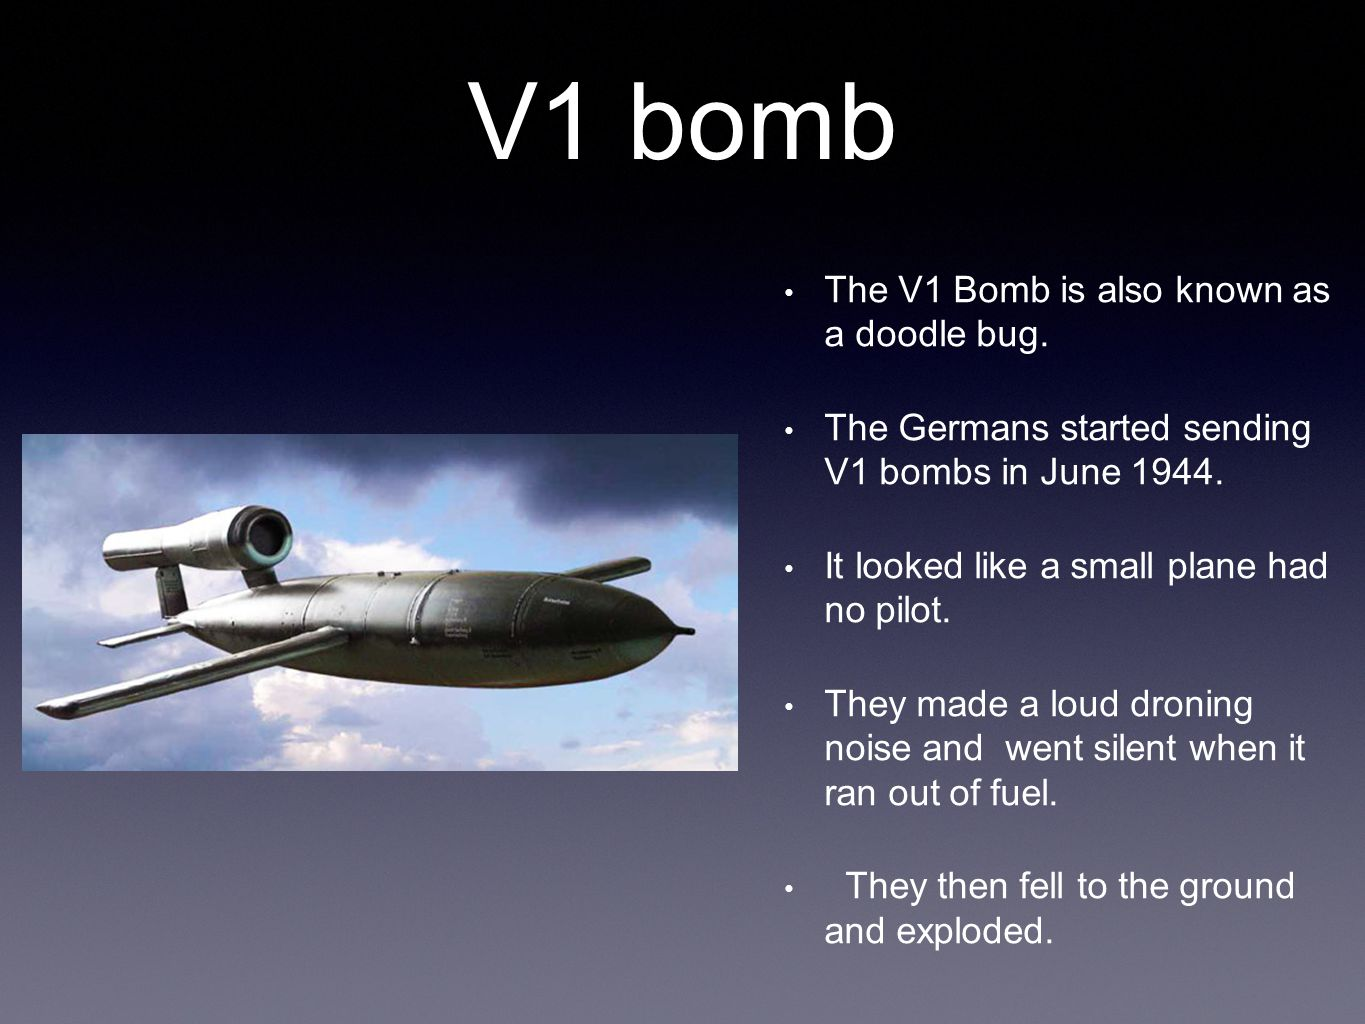 V1 bomb The V1 Bomb is also known as a doodle bug.